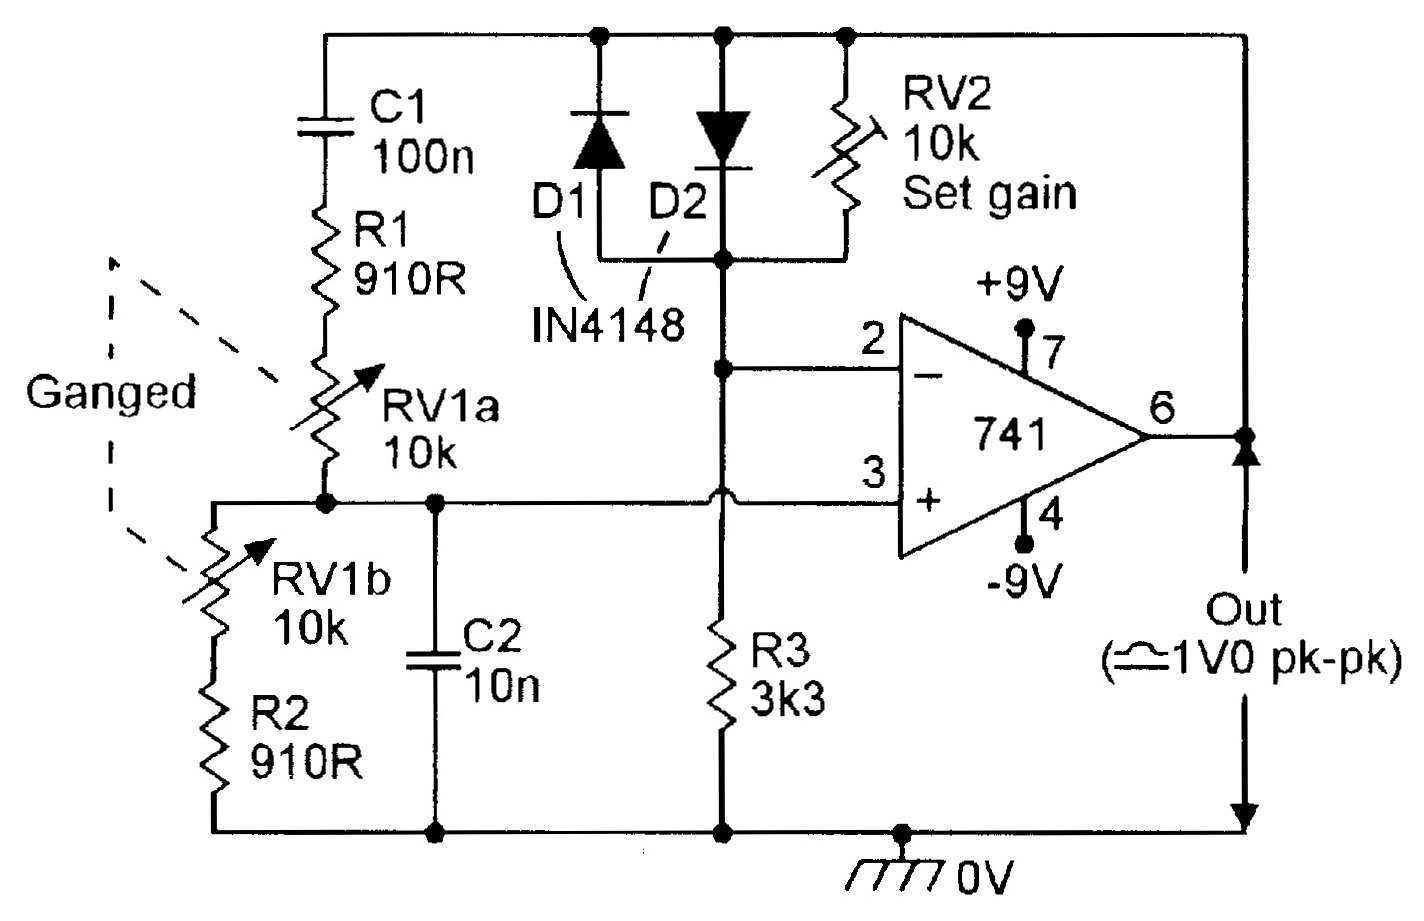 OP-AMP COOKBOOK — Part 3 | Nuts & Volts Magazine on spectrum analyzer schematic, signal generator schematic, electronic mixer schematic, tone control circuit schematic, ammeter schematic, voltmeter schematic, voltage divider schematic, led circuit schematic, breadboard schematic, frequency counter schematic, transistor tester schematic, function generator schematic, current source schematic, gyrator schematic, marx generator schematic, lead-lag schematic, multimeter schematic, esr meter schematic,